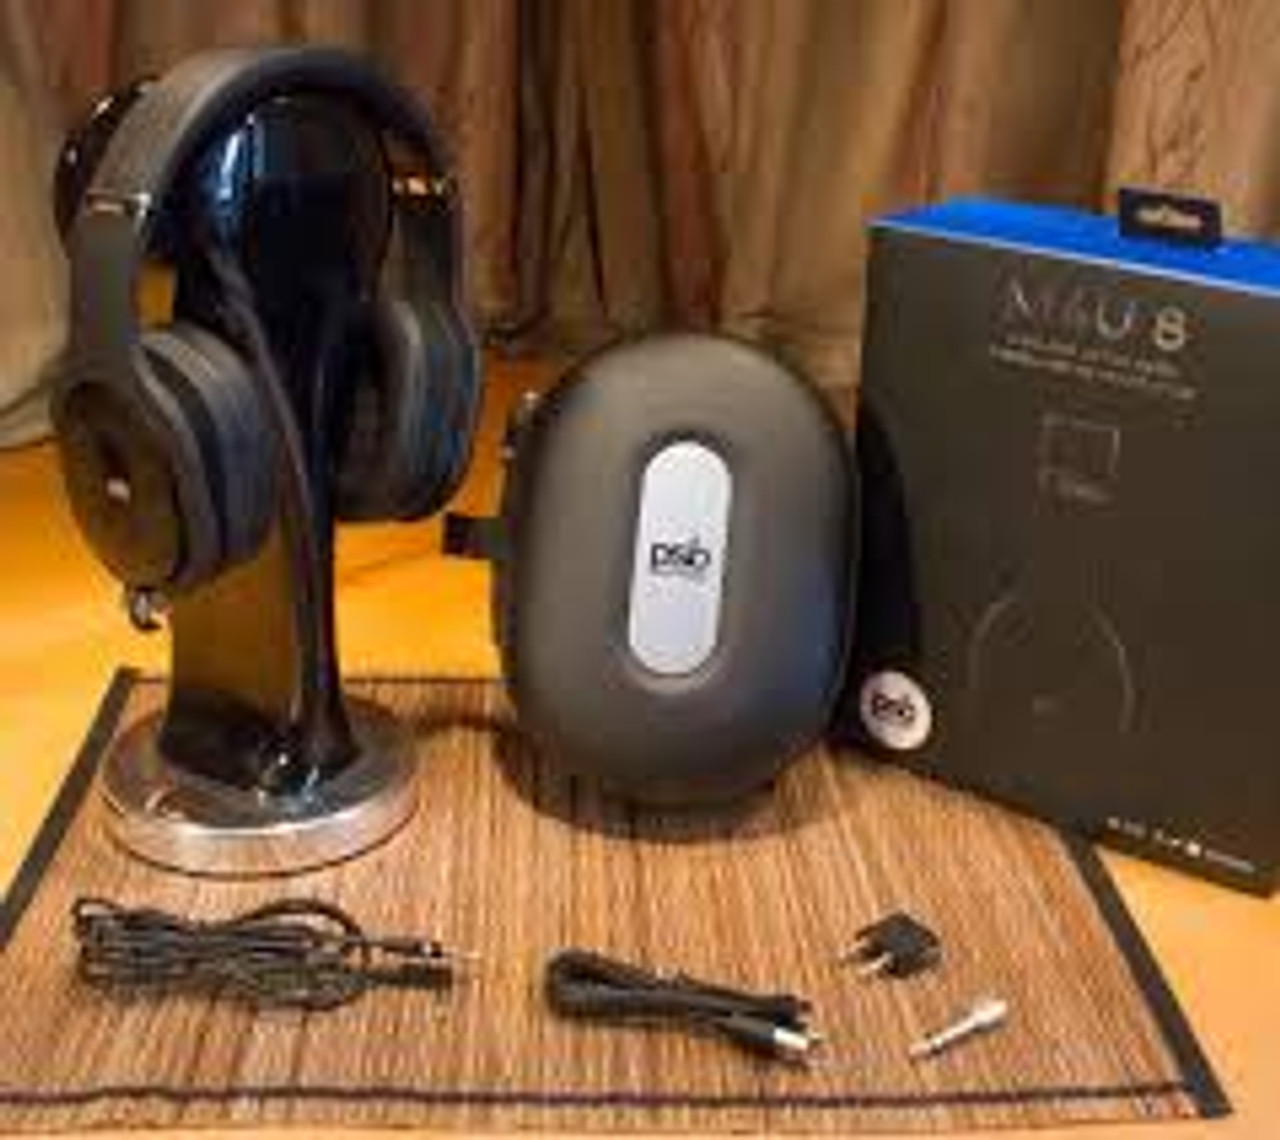 PSB M4U 8 Wireless Headphones